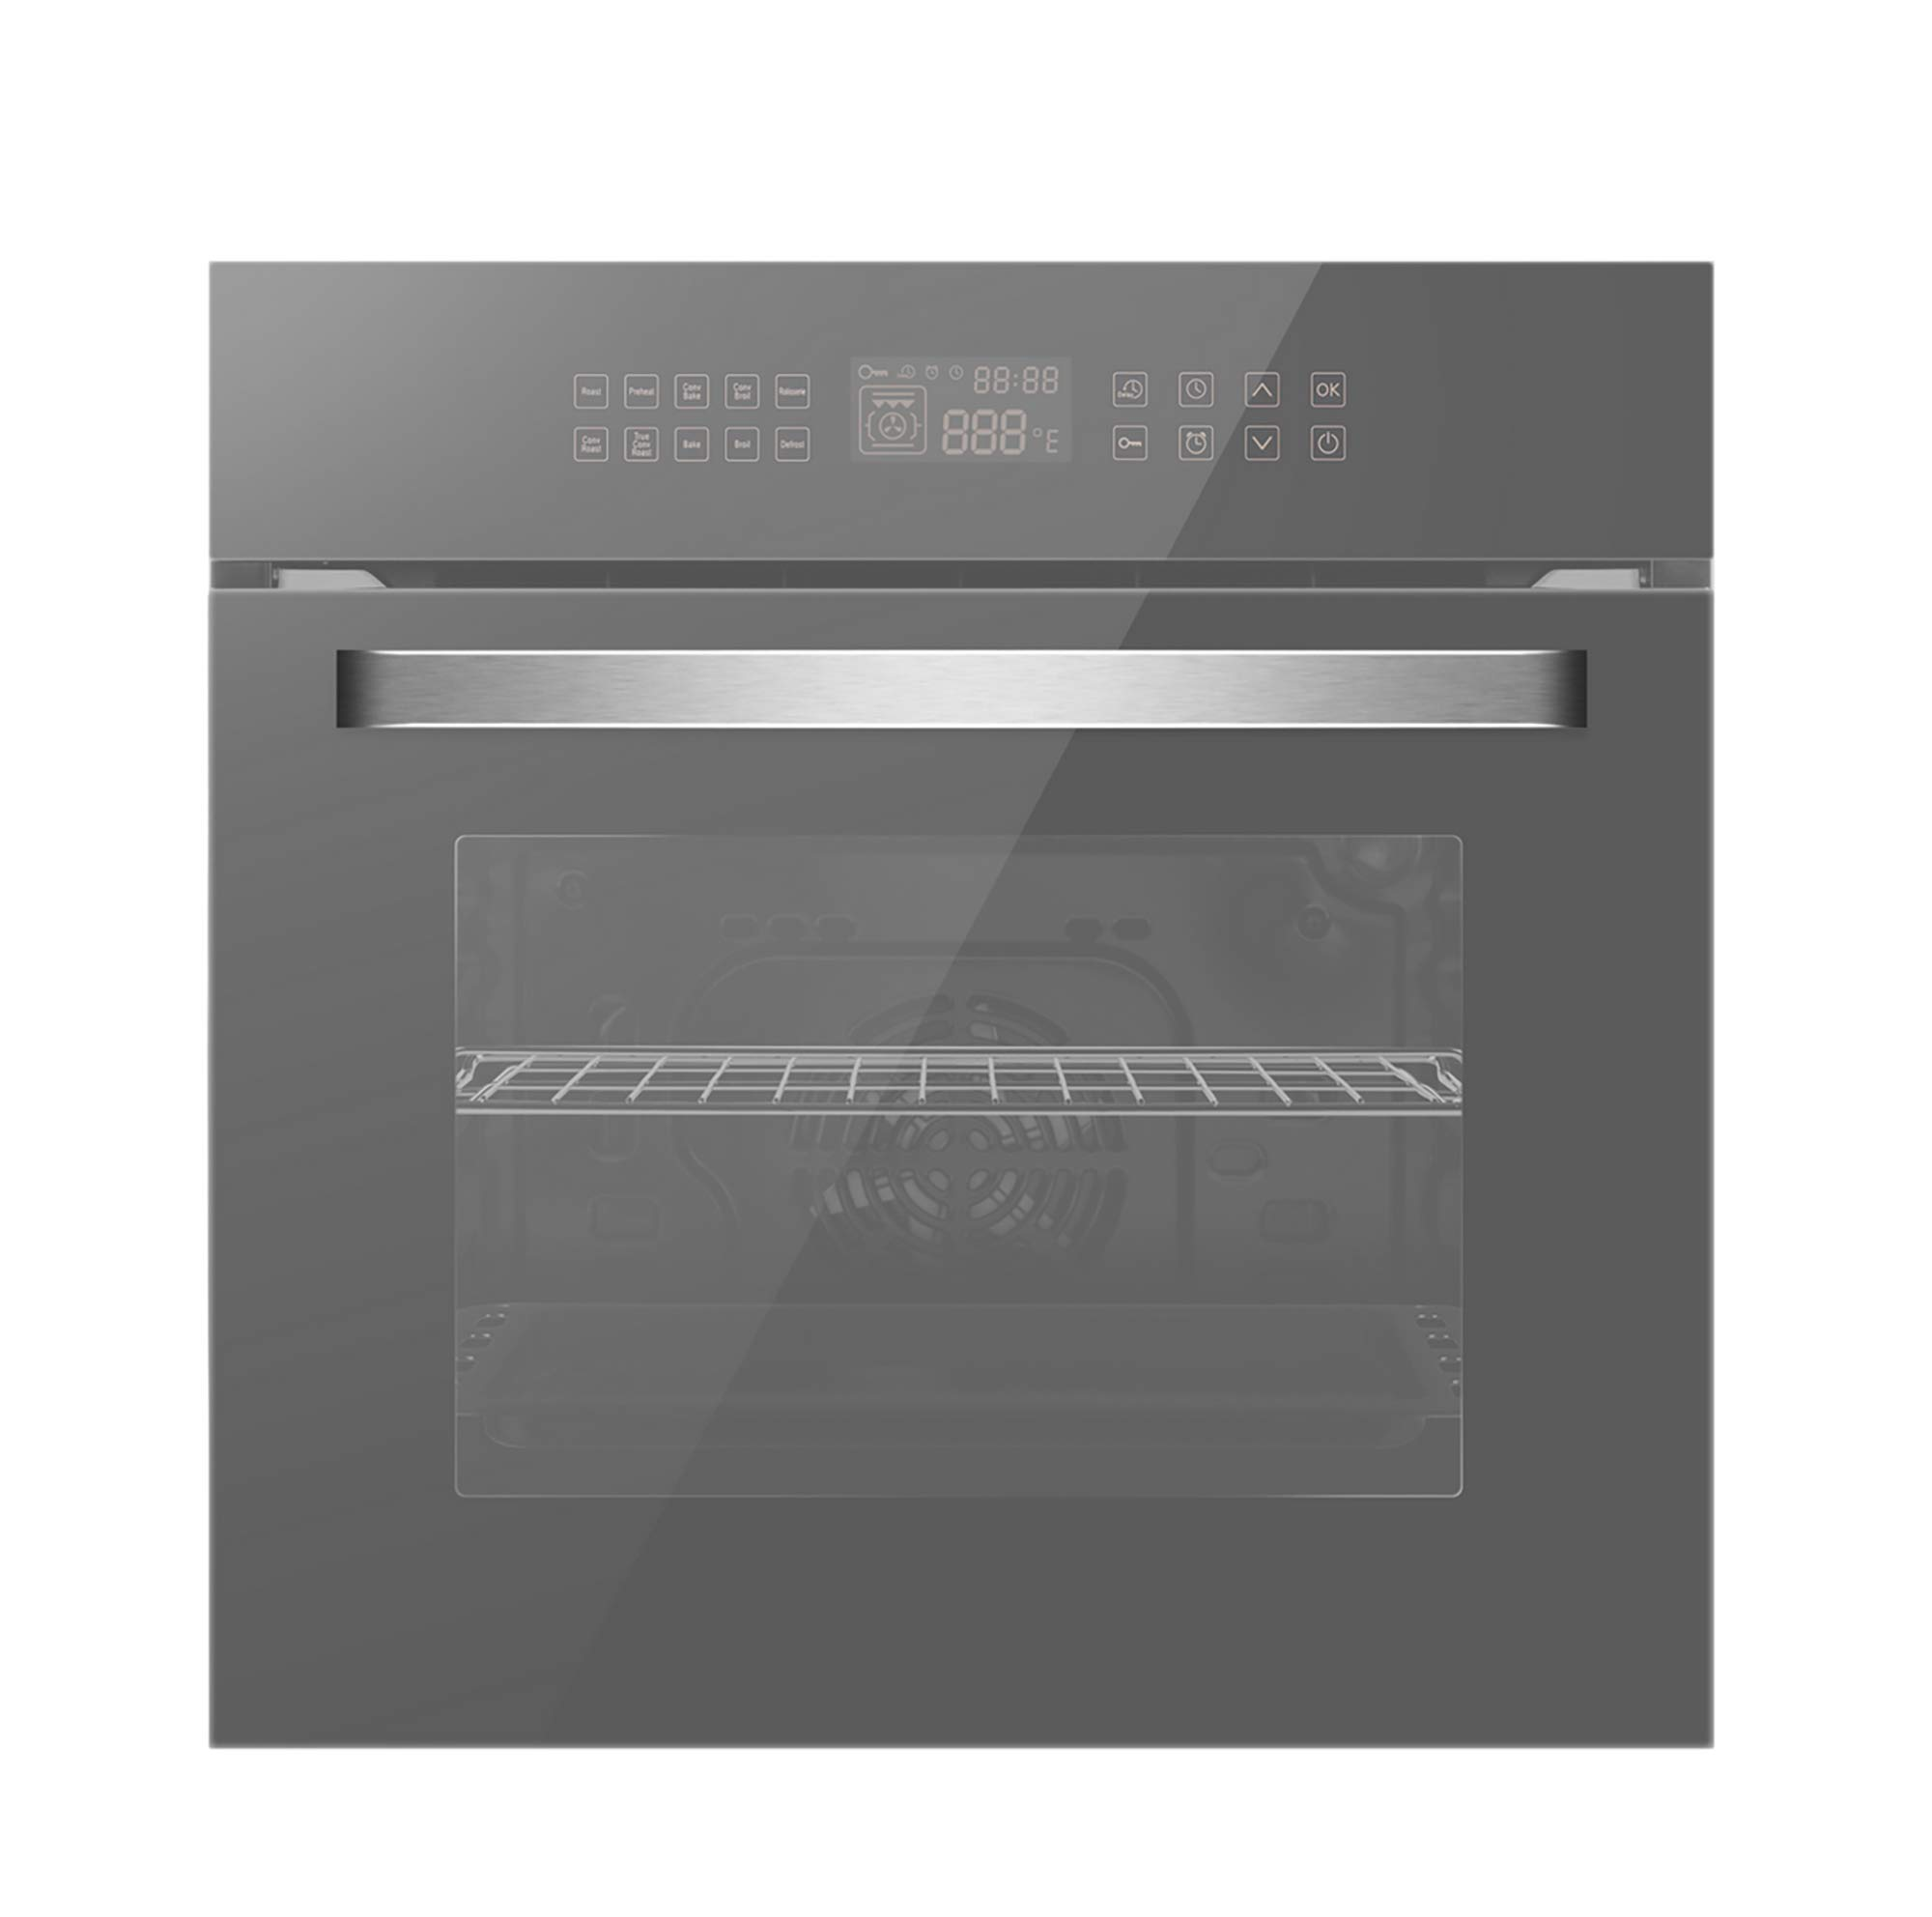 Empava 24'' Electric Convection Single Wall Oven 10 Cooking Functions Deluxe 360° ROTISSERIE with Sensitive Touch Control in Silver Mirror Glass EMPV-SOC17, SOC17 by Empava